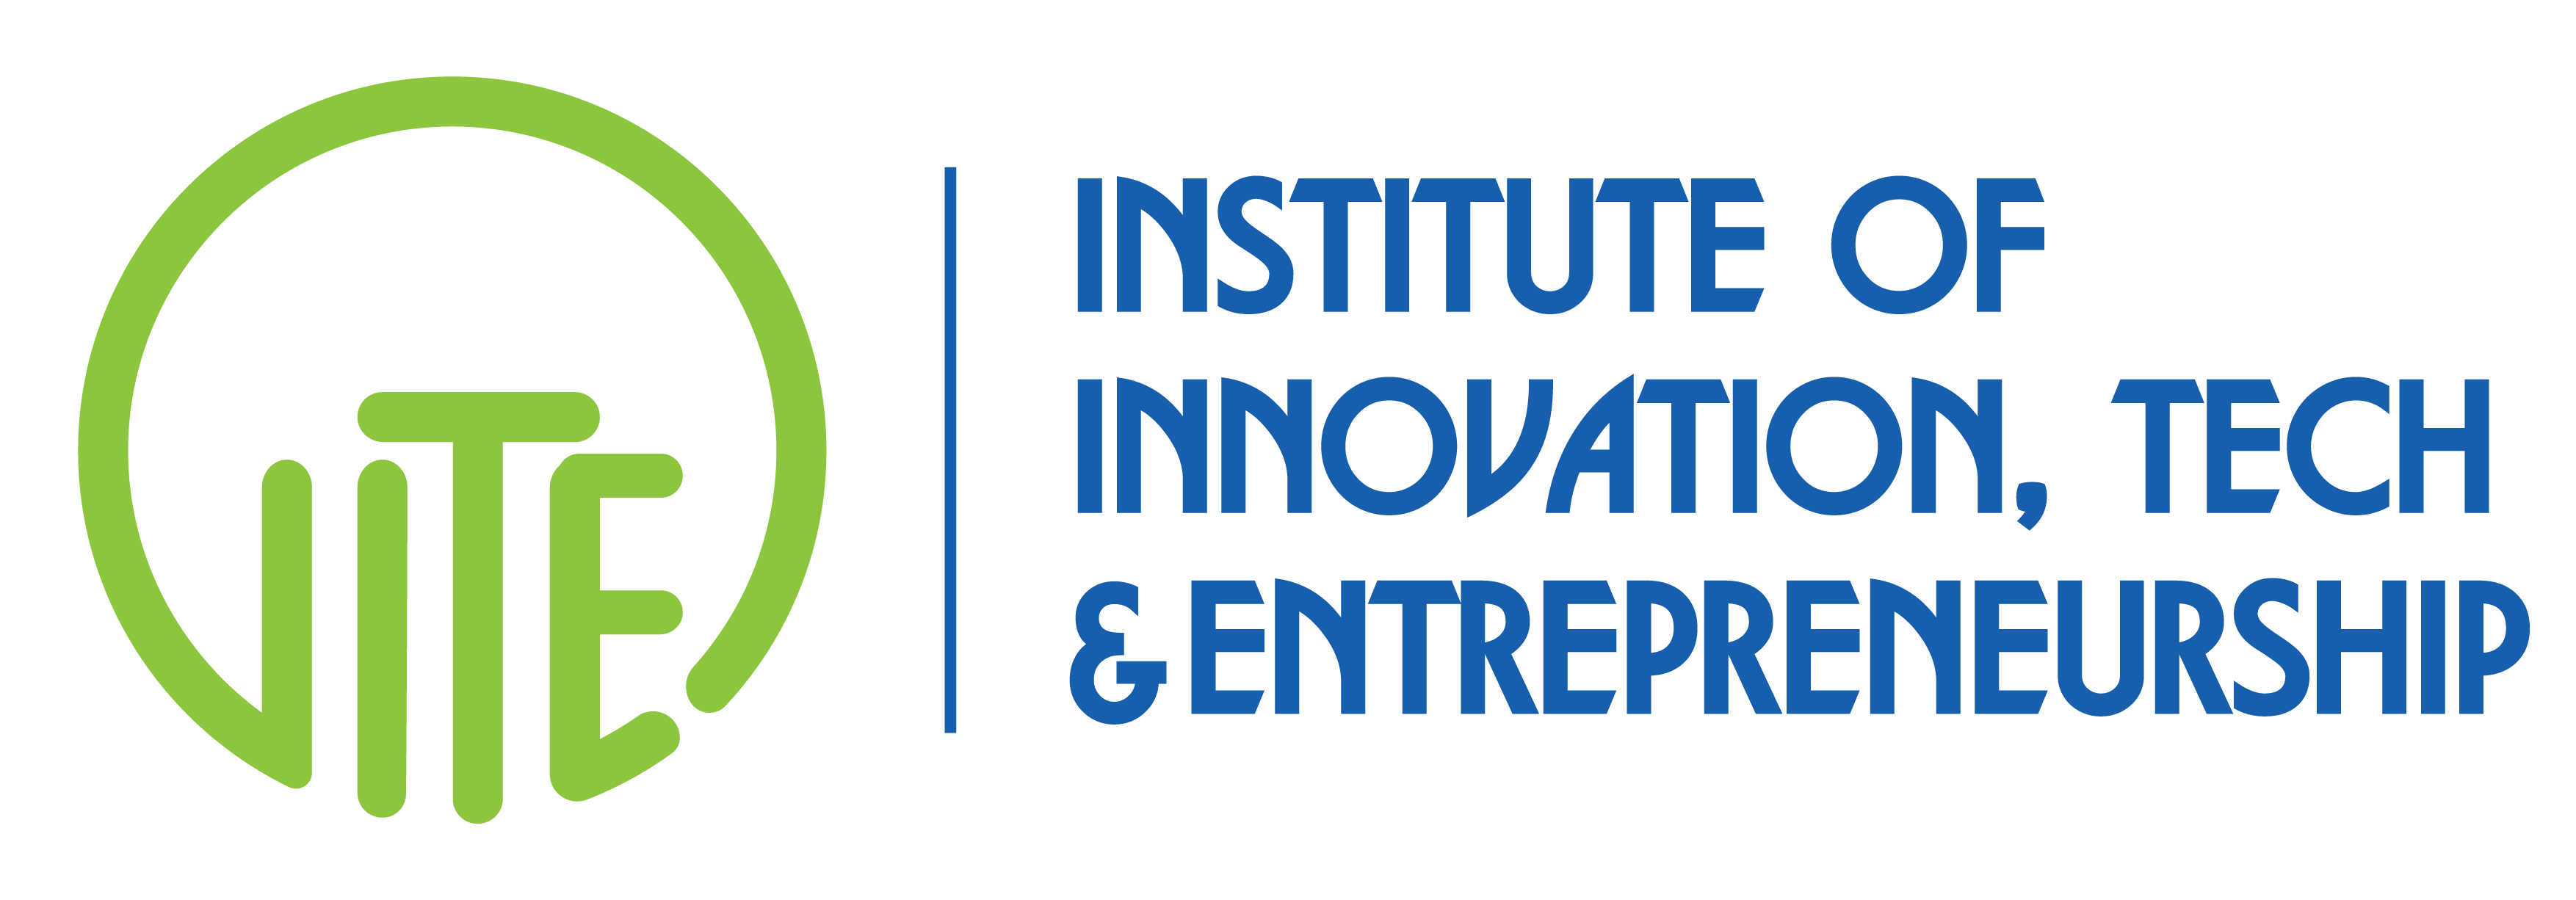 Institute of Innovation, Technology and Entrepreneurship – IITE